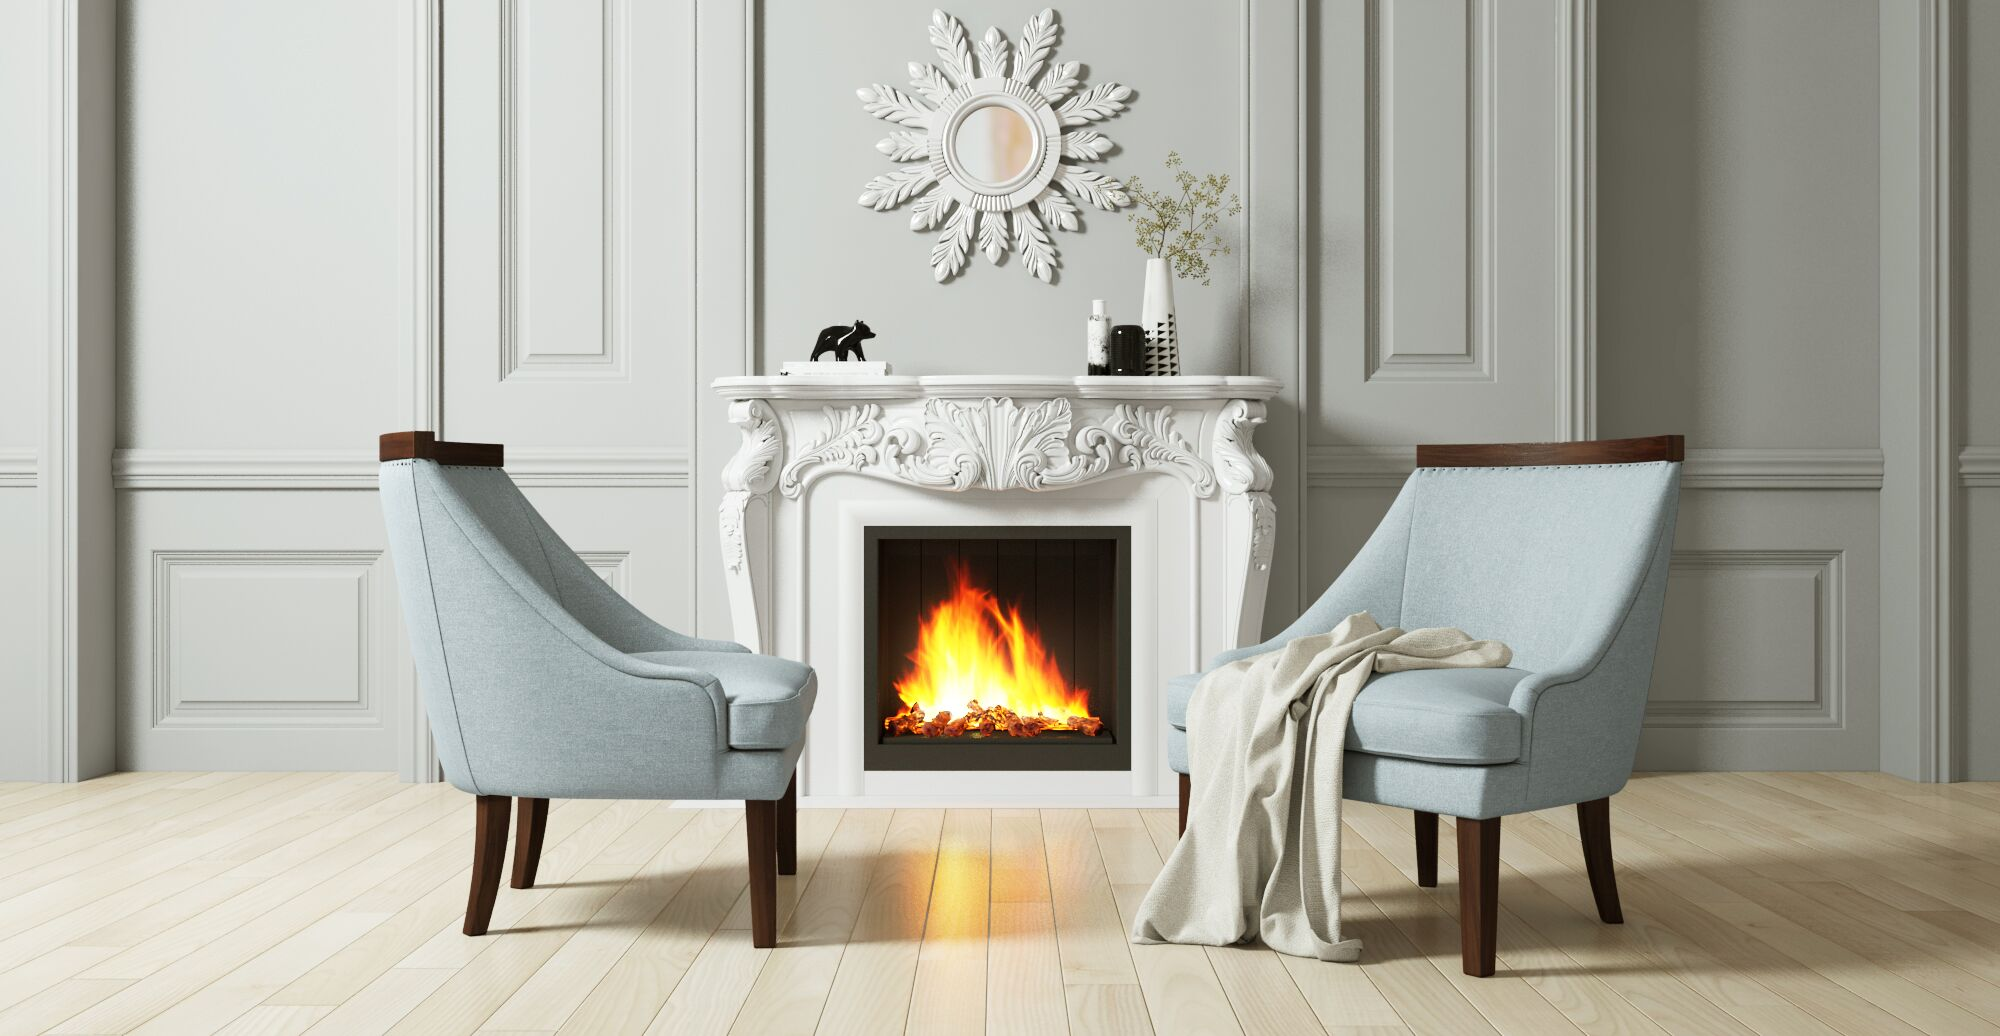 Fireplace with surrounding glam furniture